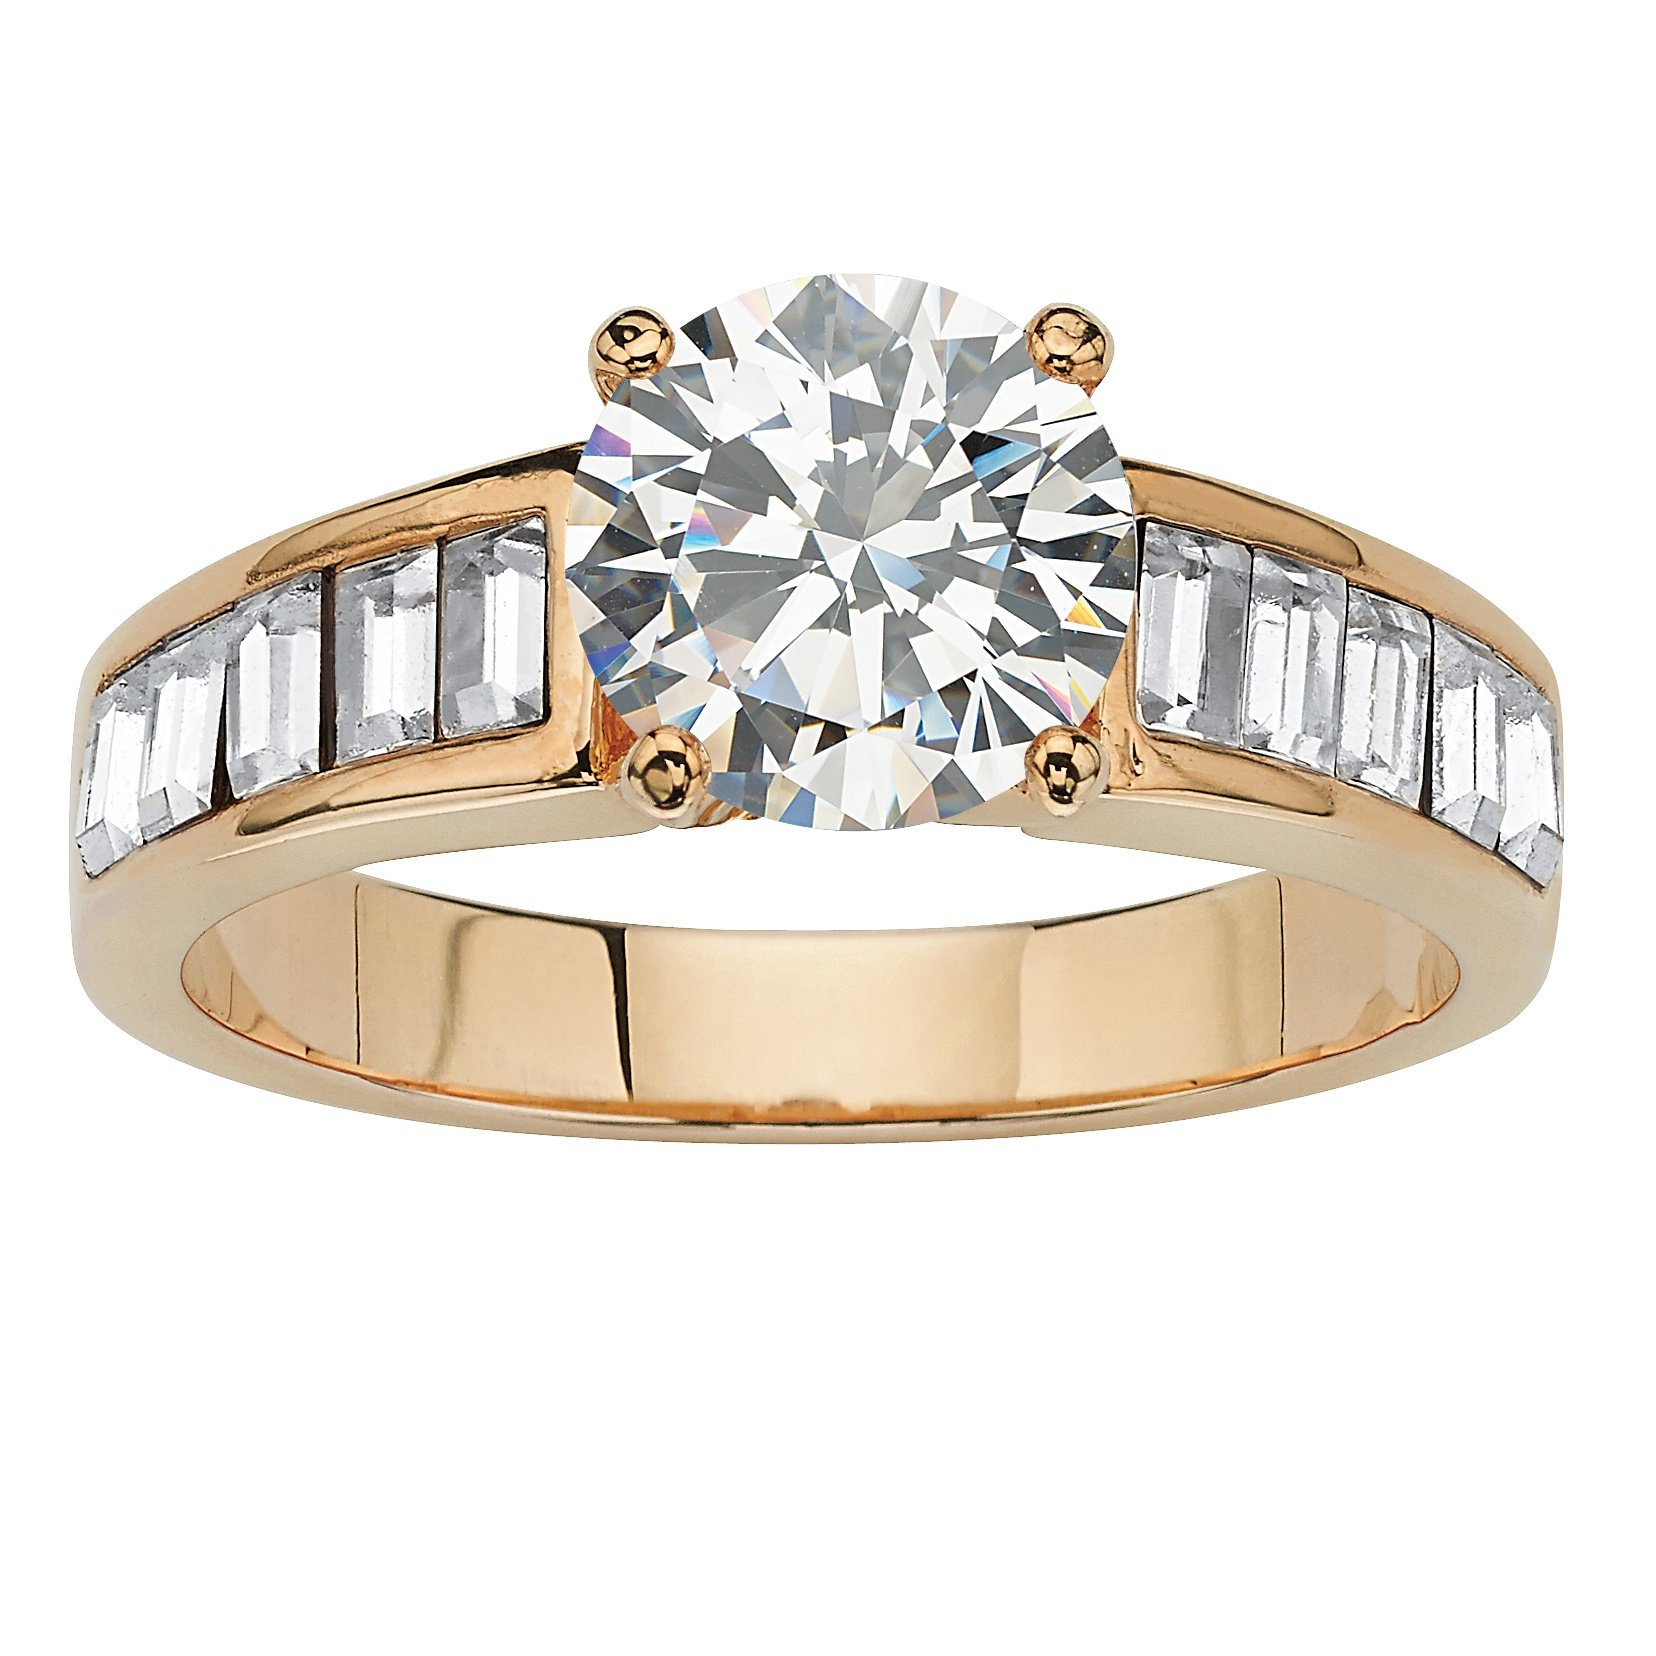 White Cubic Zirconia and Genuine Austrian Crystal Baguette Accent 14k Yellow Gold-Plated Ring Size 8